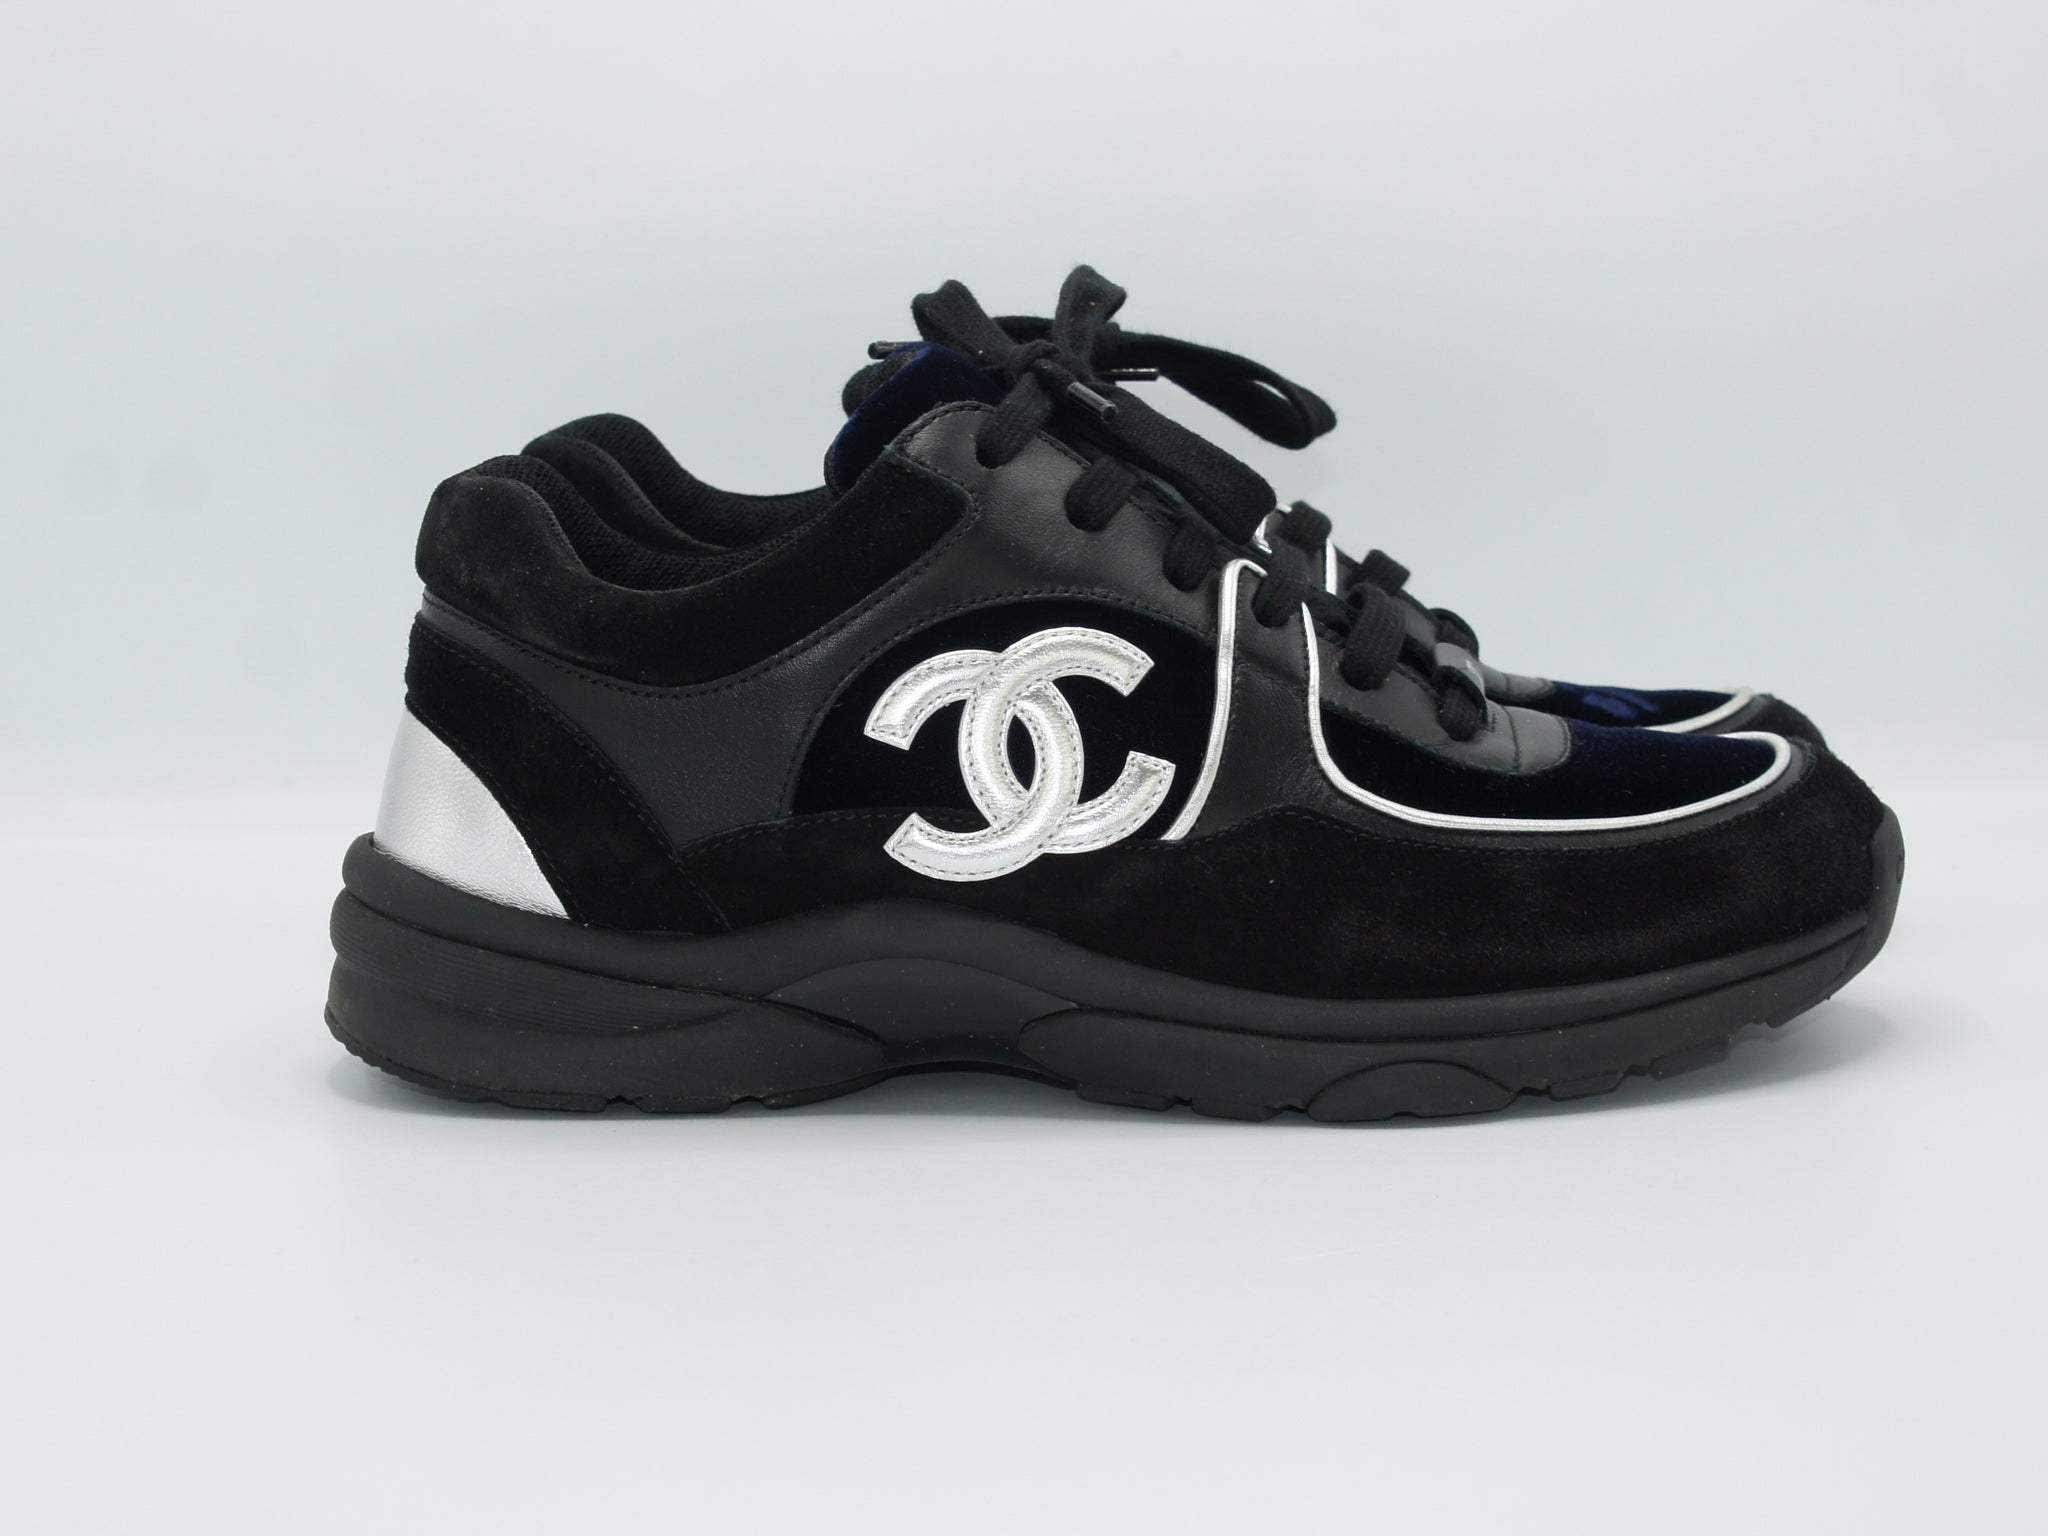 Chanel Sneaker 39 - Iconics Preloved Luxury